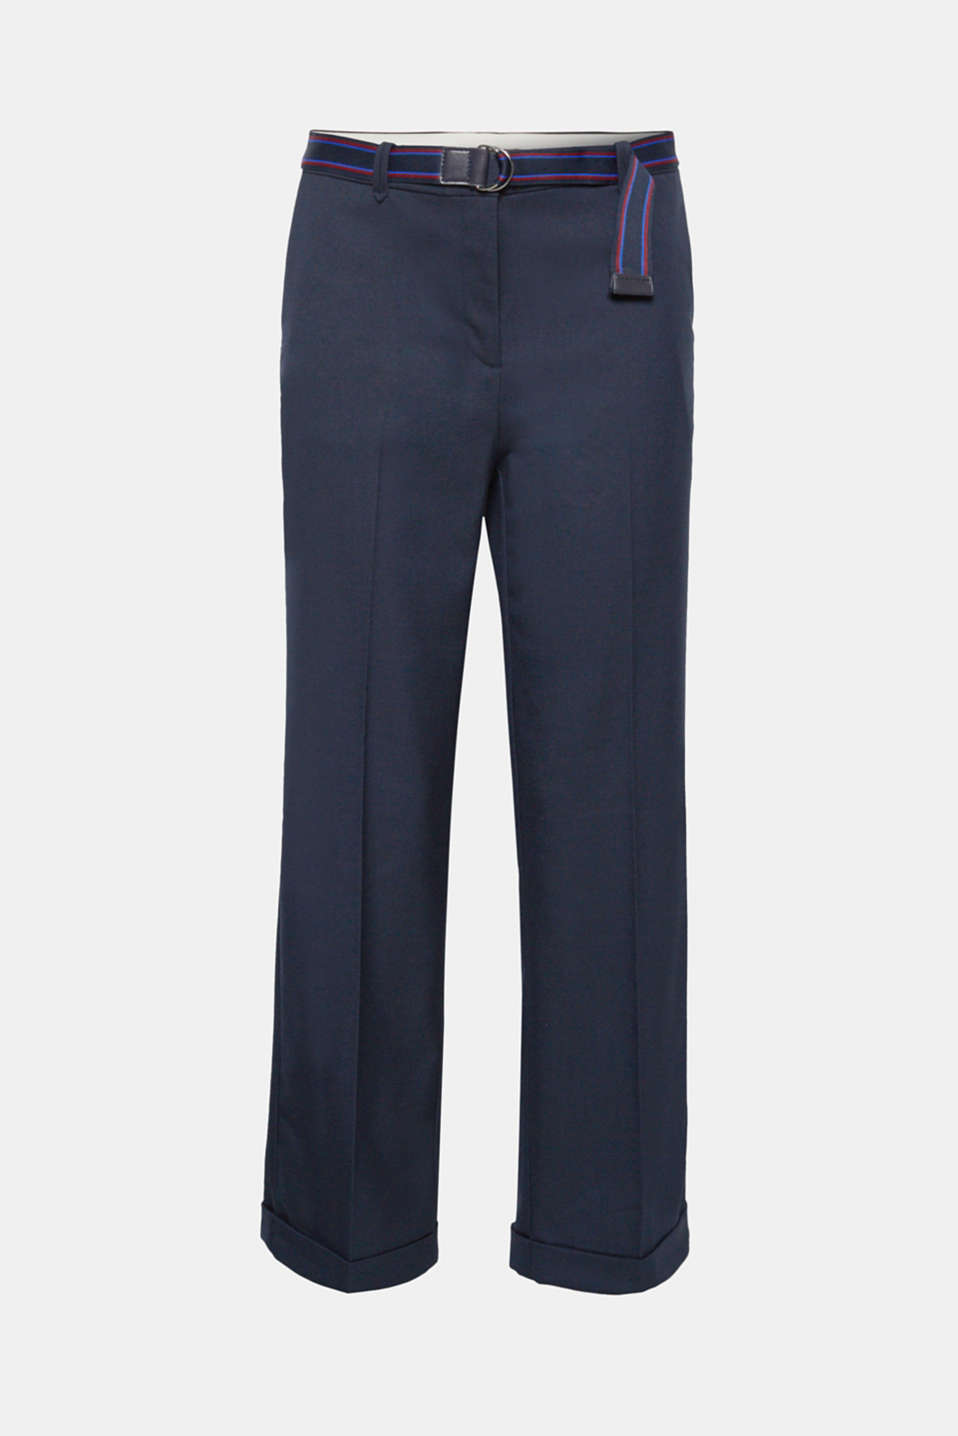 Perfect for work and business: Thanks to the loose cut with a straight, wide leg and the softly draped material, these stretch trousers look smart and elegant!